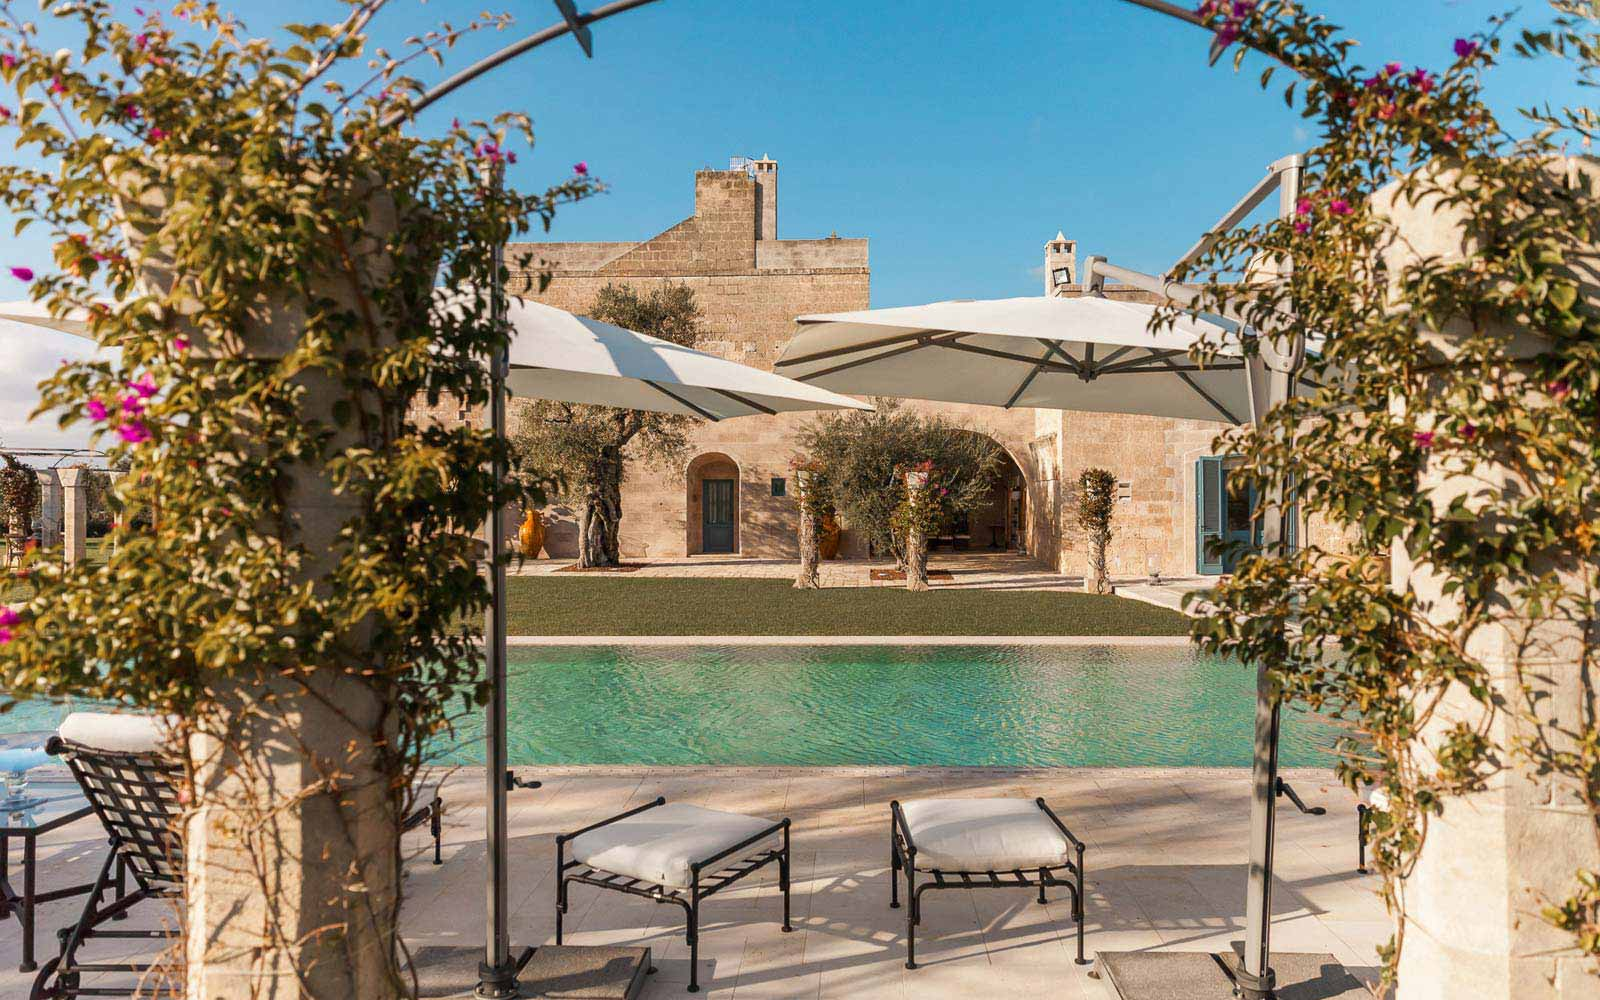 Pool view at La Residenza of Masseria Pettolecchia